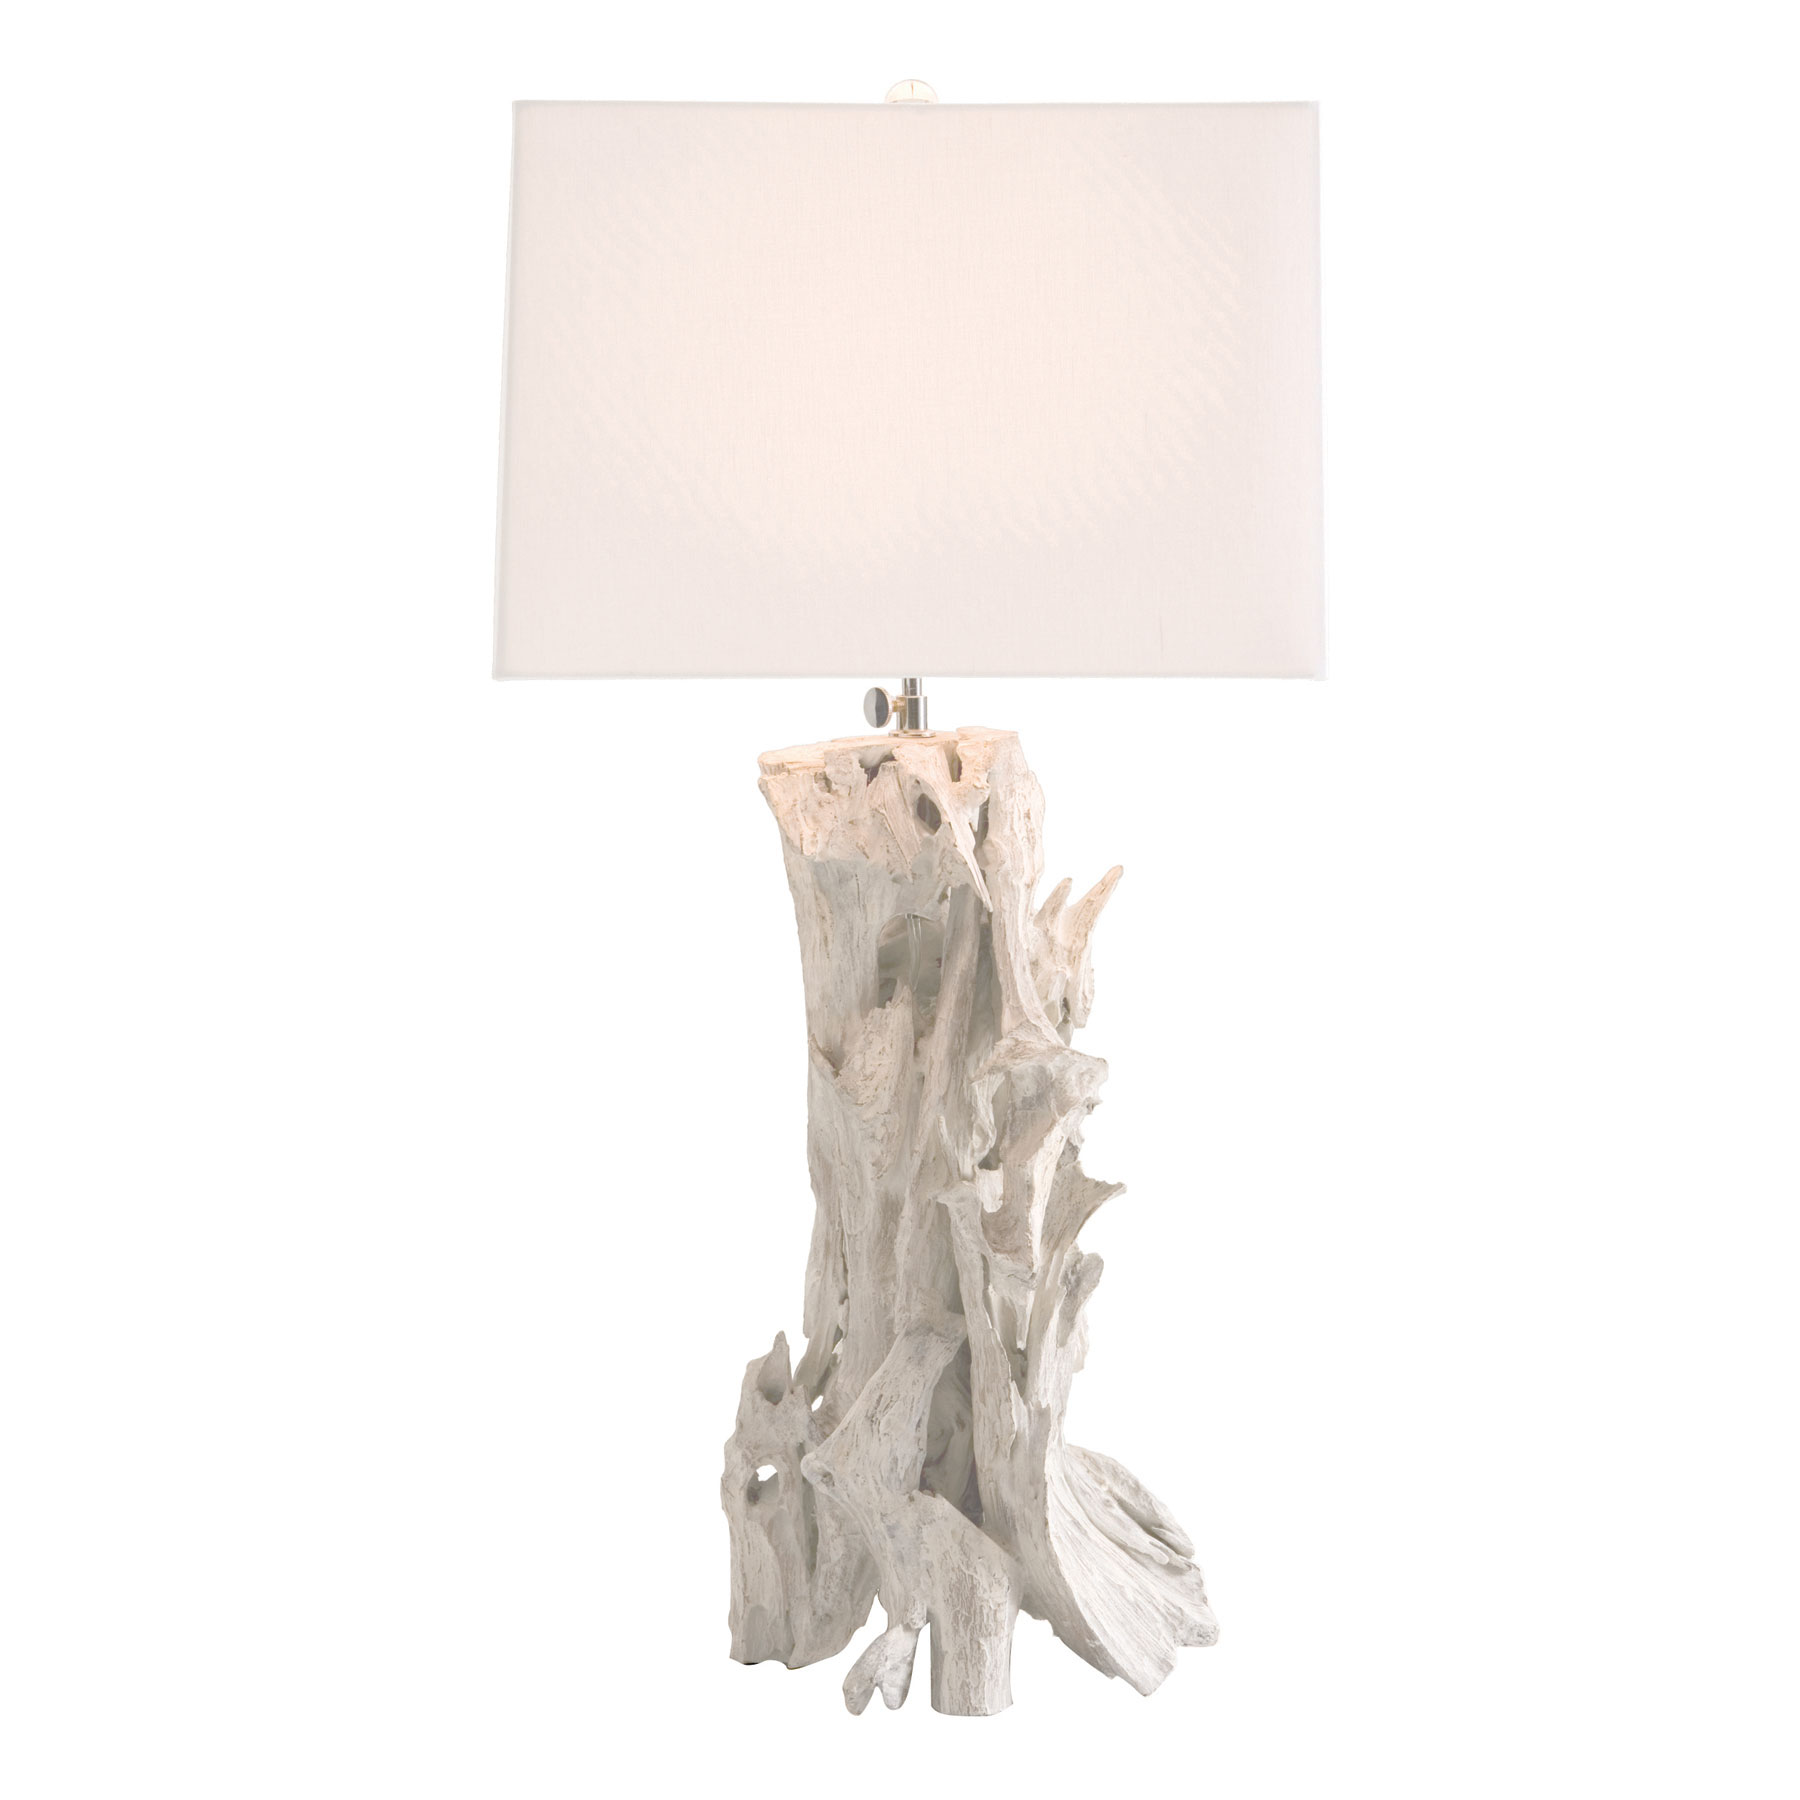 Driftwood Lighting Driftwood Table Lamp By Arteriors Home Ah 15408 394